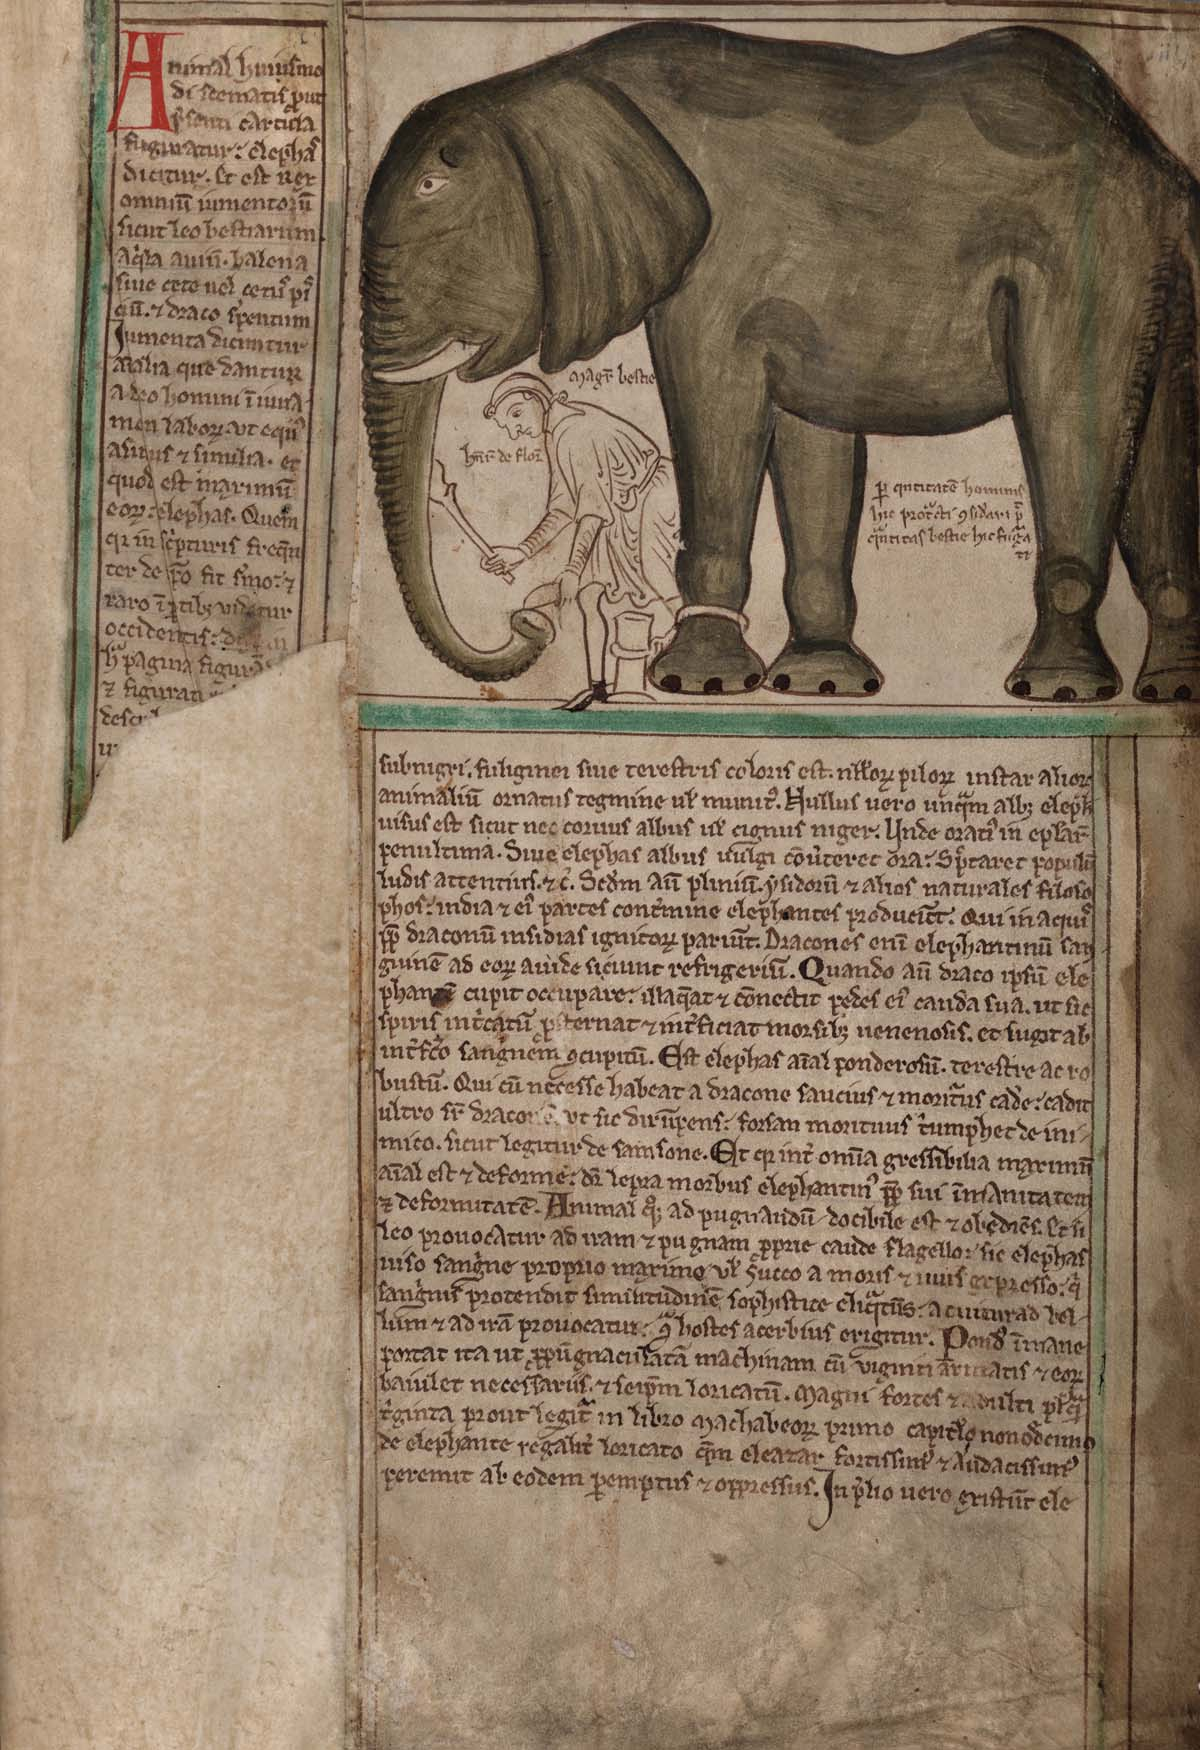 medieval manuscript page with Latin text and a large elephant at top